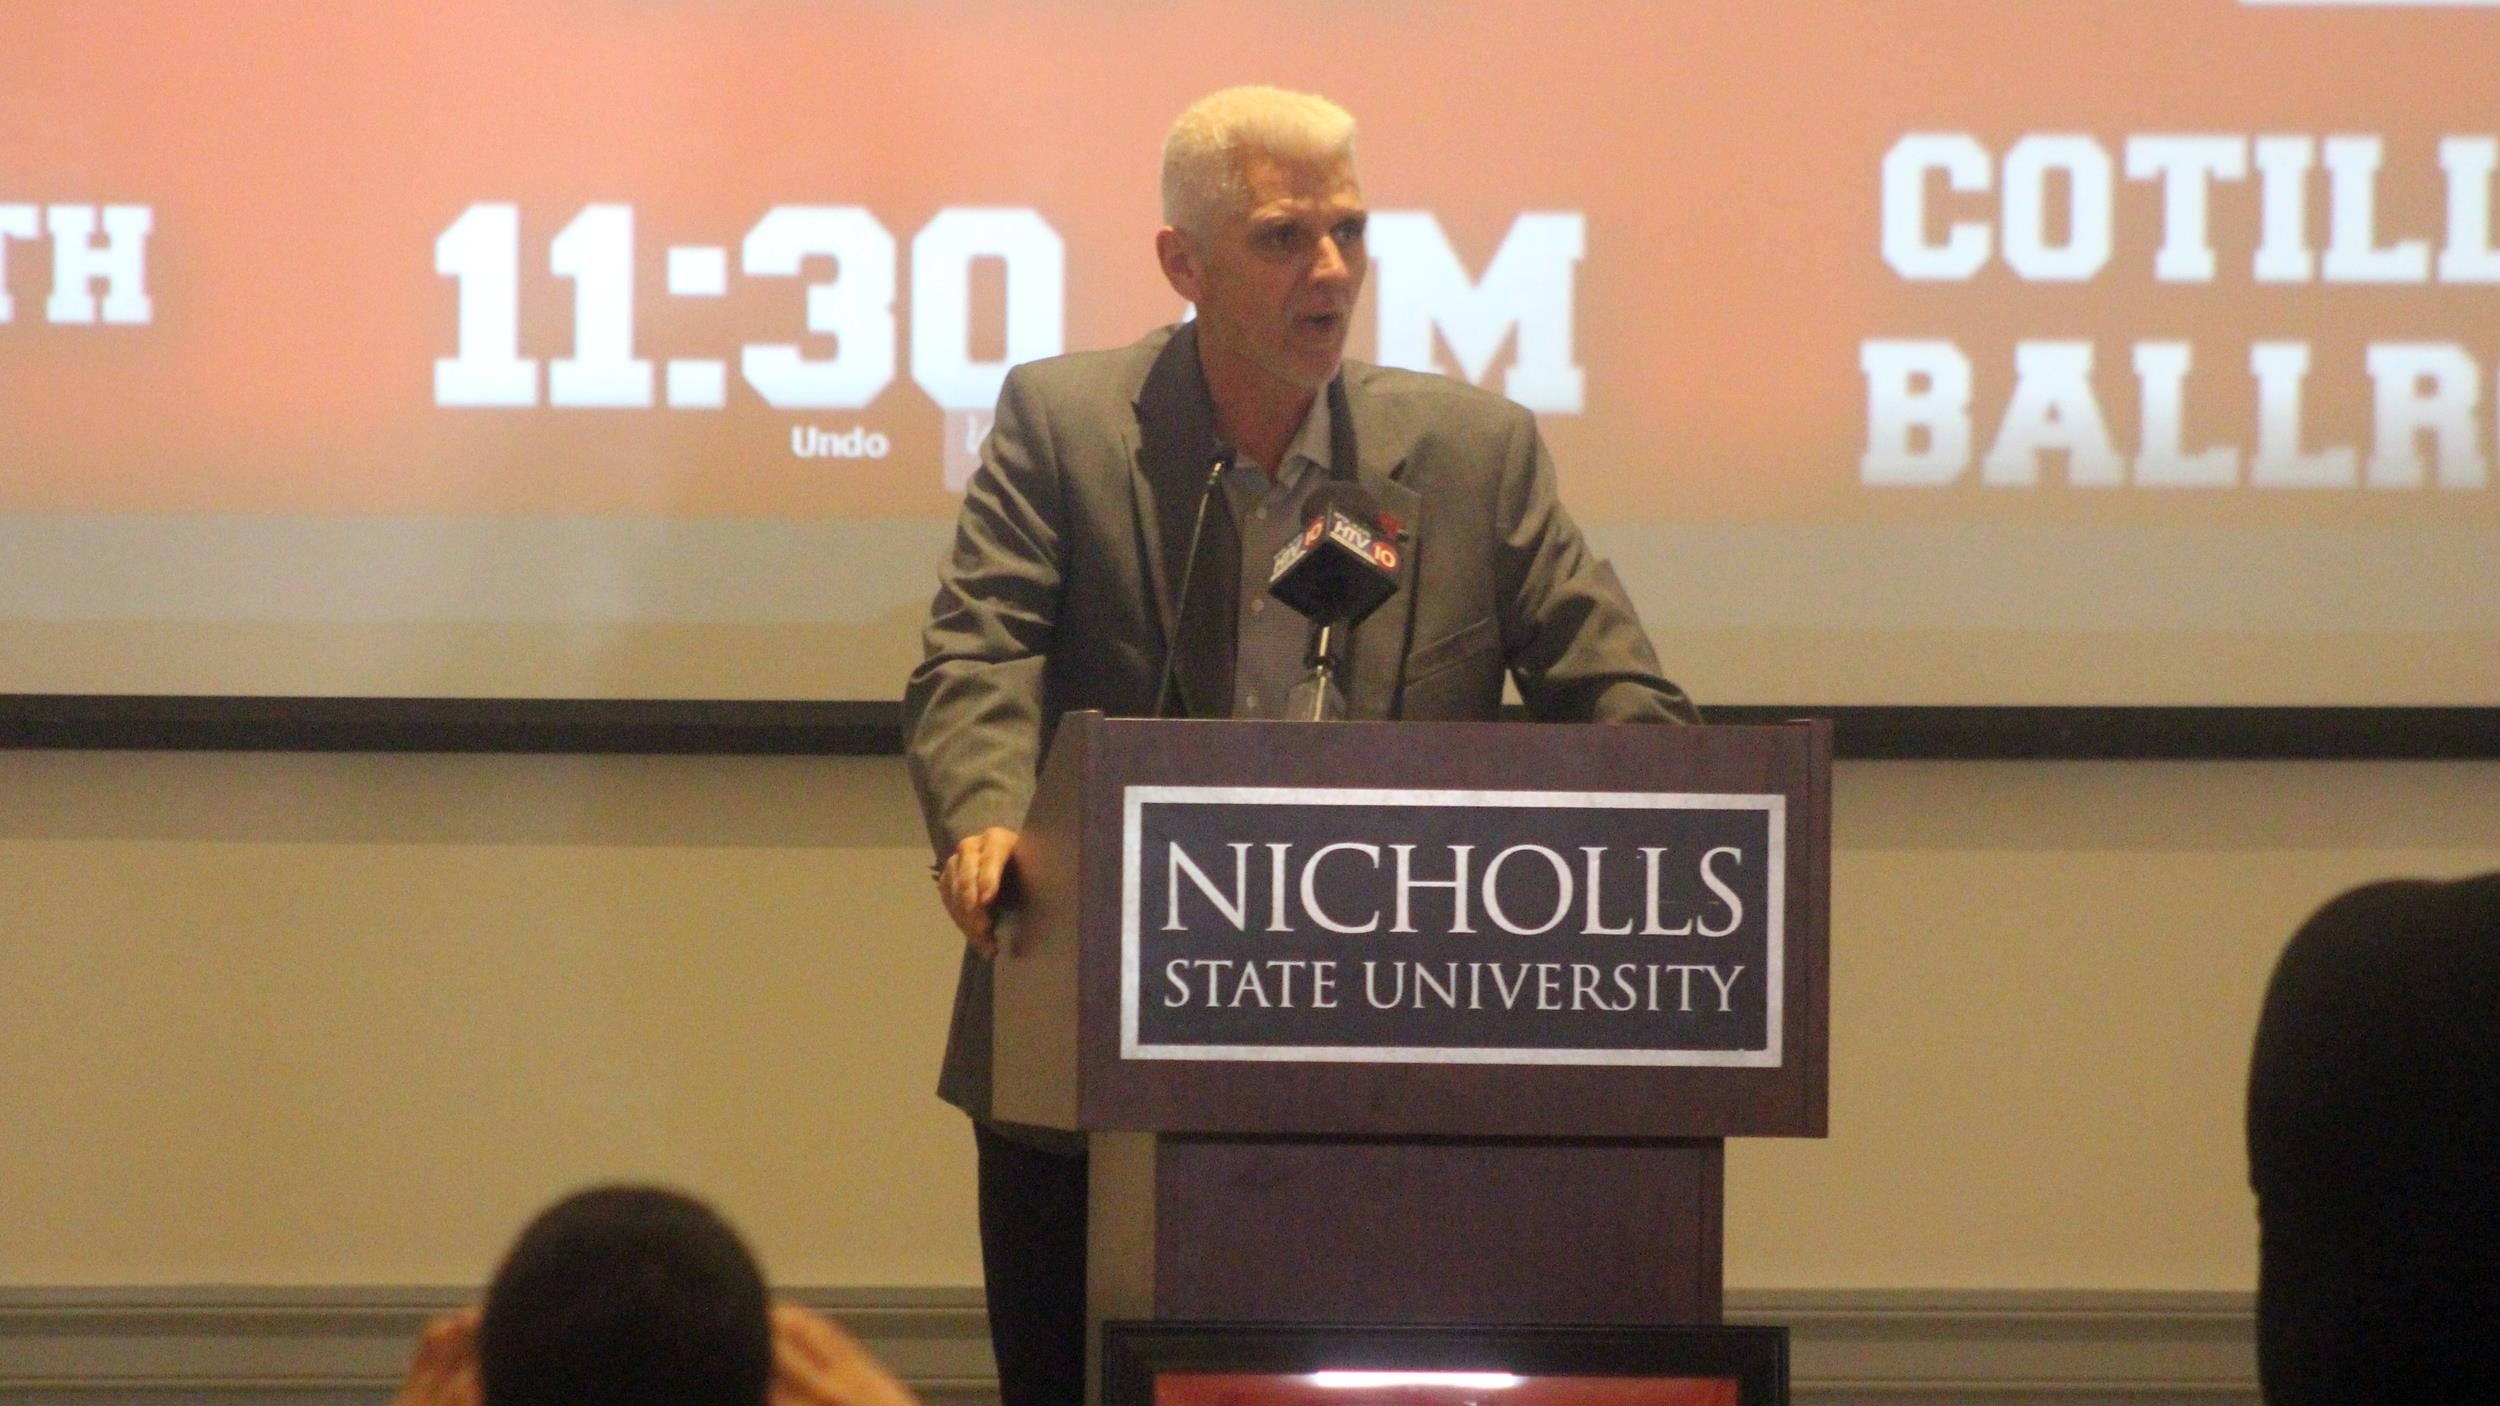 Colonel Football welcomes 20 on National Signing Day - Nicholls ... e070a70a5